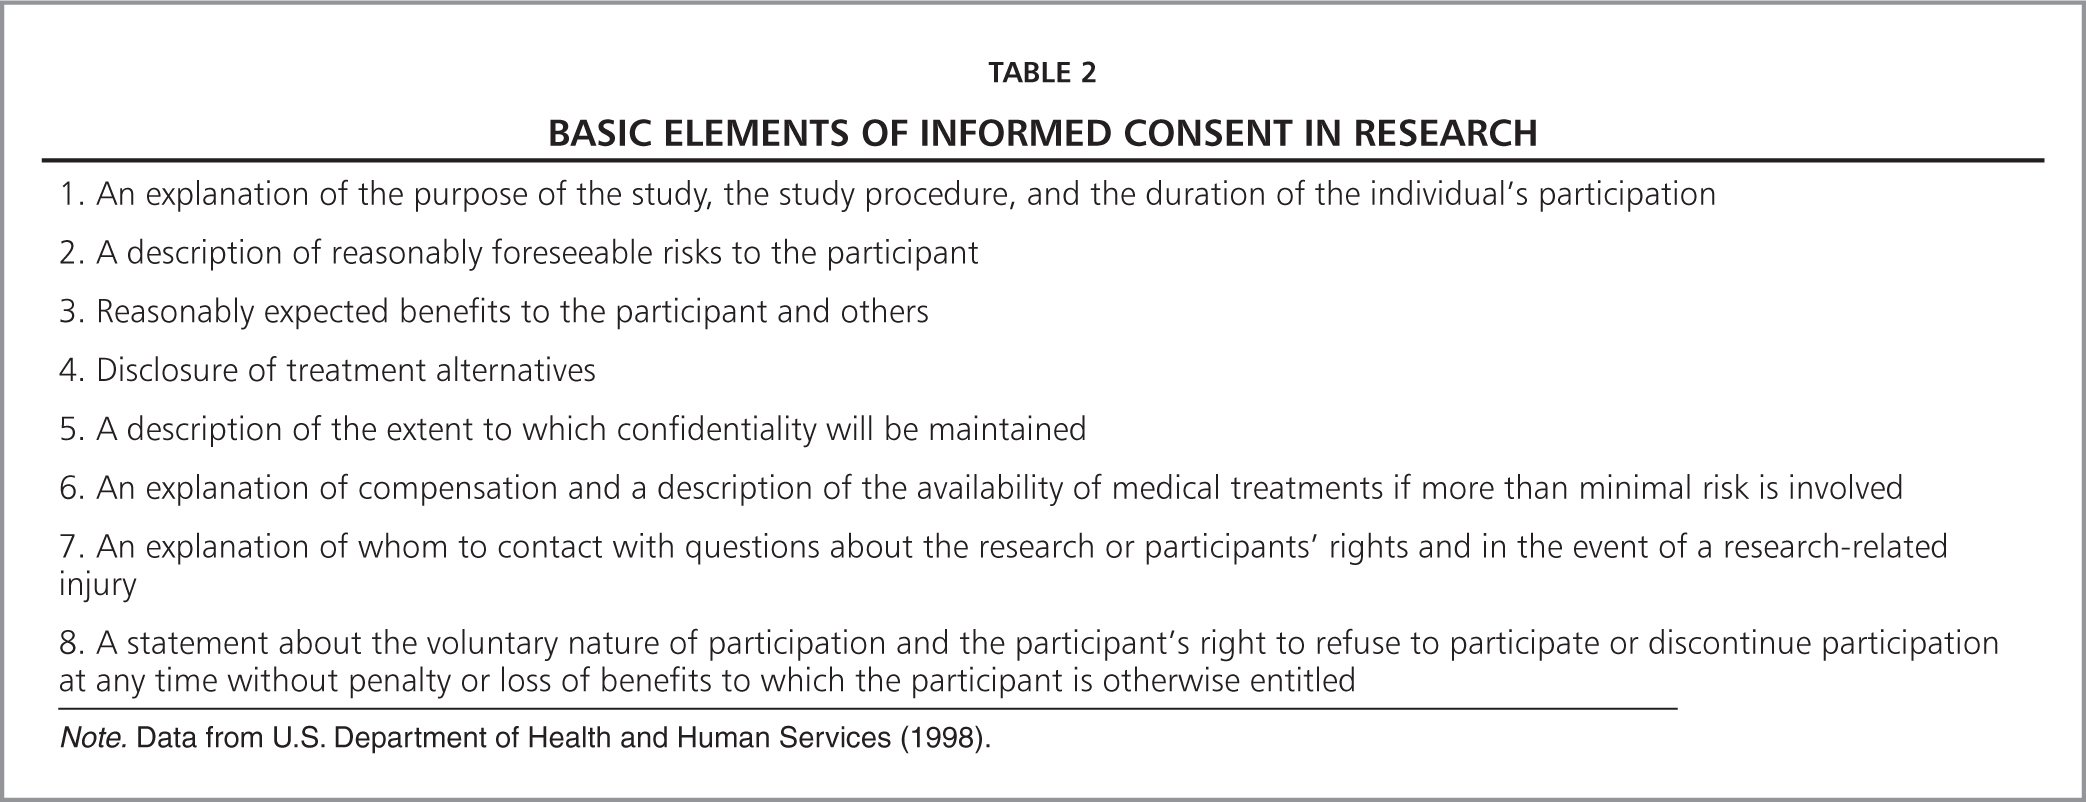 Basic Elements of Informed Consent in Research